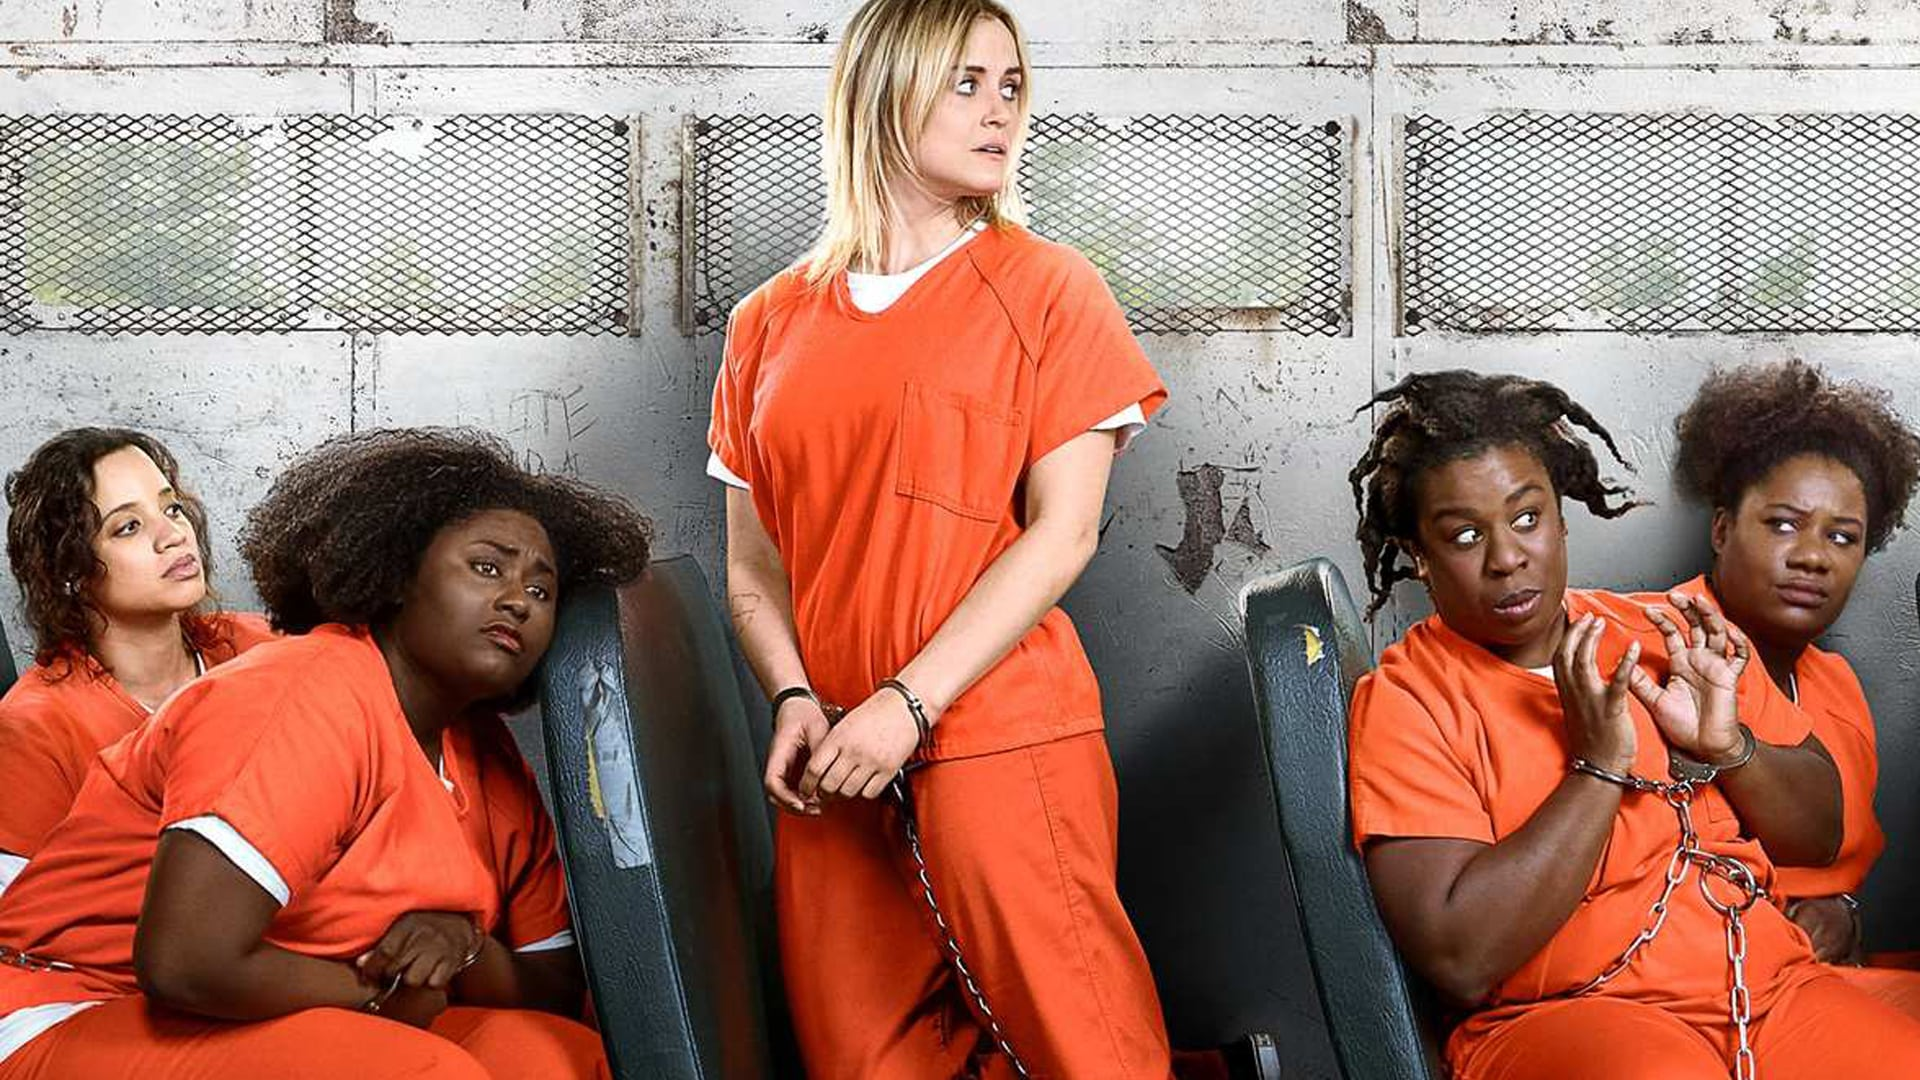 Radicale cambio di pagina per Orange Is The New Black 6